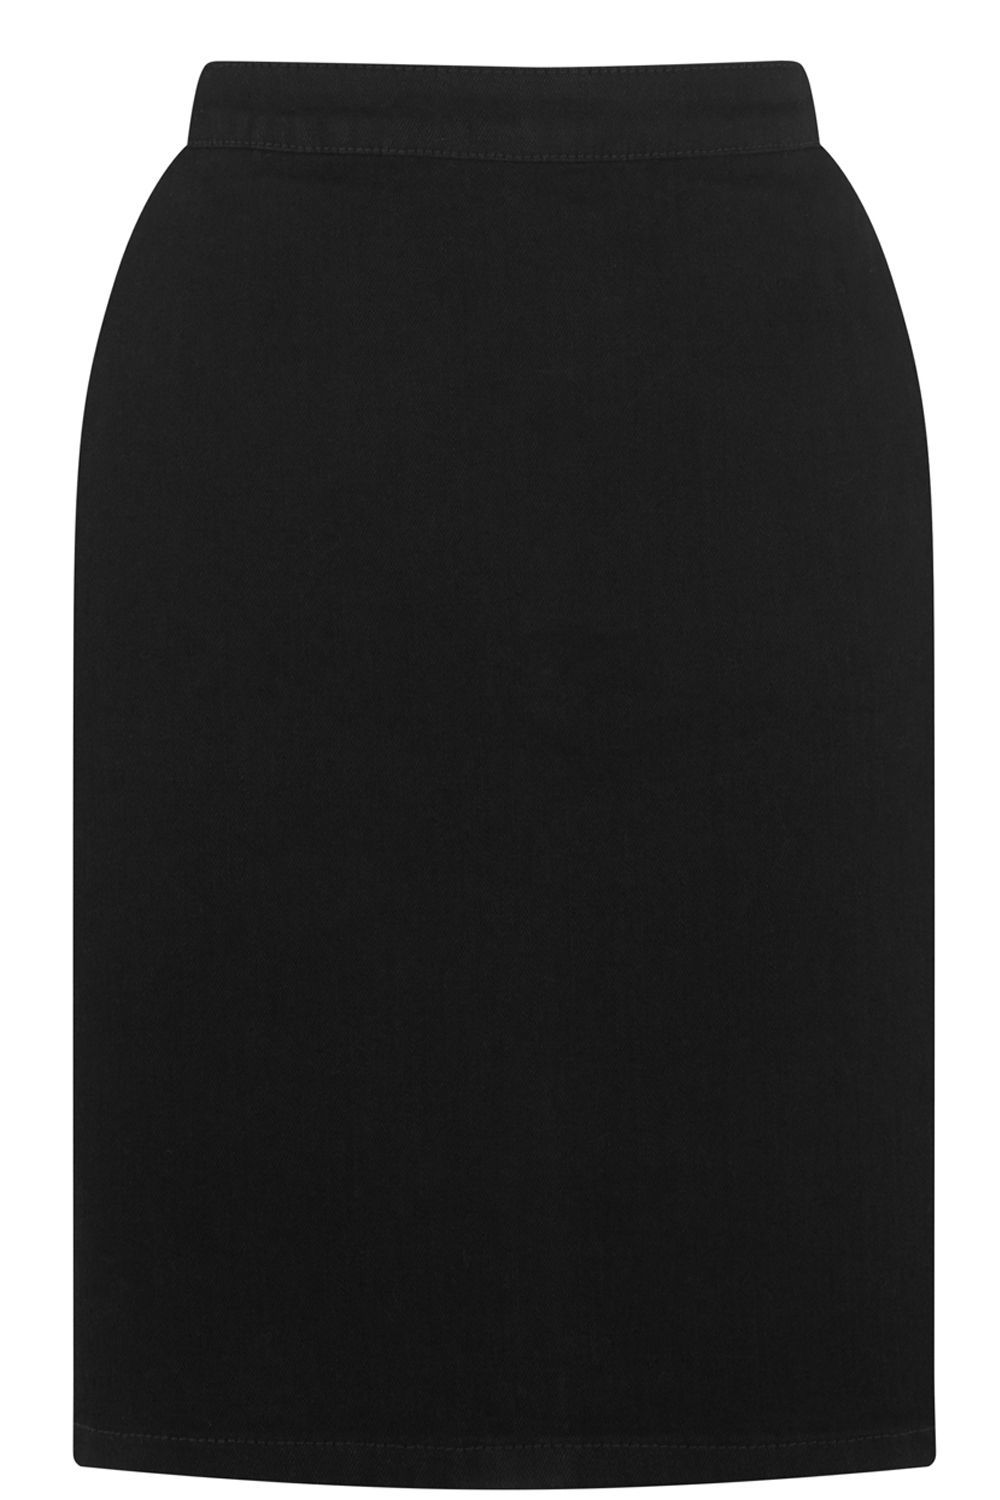 Clean Denim Pelmet Skirt, Black - pattern: plain; style: pencil; fit: tailored/fitted; waist: high rise; hip detail: draws attention to hips; predominant colour: black; occasions: casual, creative work; length: just above the knee; fibres: cotton - 100%; waist detail: feature waist detail; texture group: denim; pattern type: fabric; season: s/s 2016; wardrobe: basic